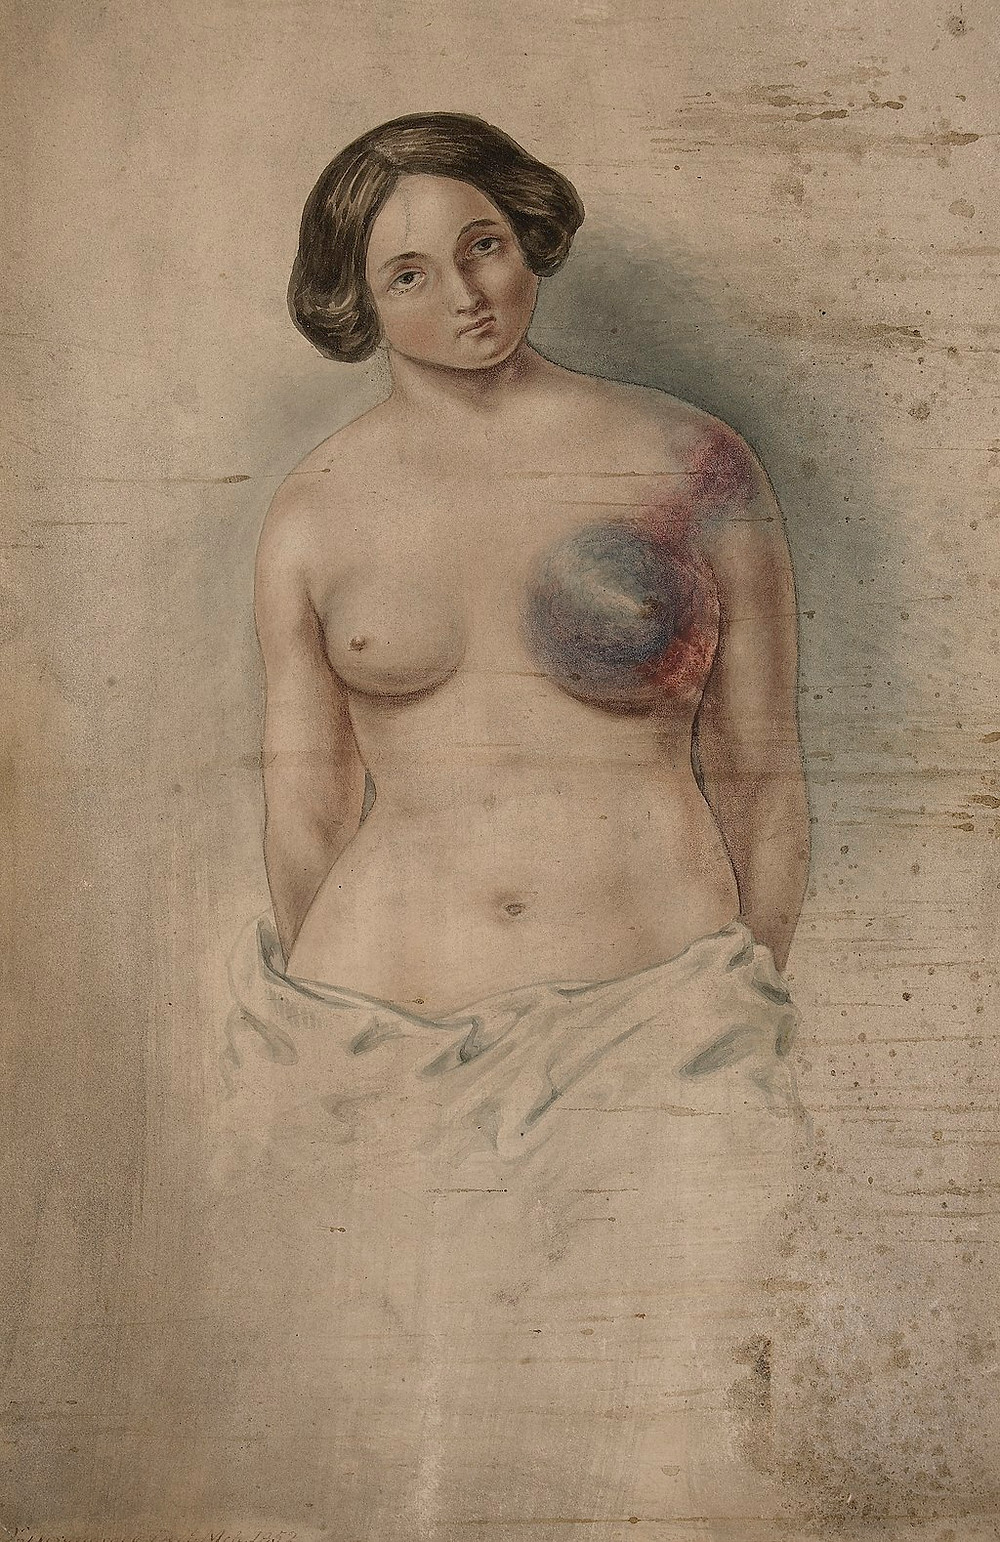 Woman suffering from cancer of the left breast Wellcome L0061346. Source: Wikimedia Commons.